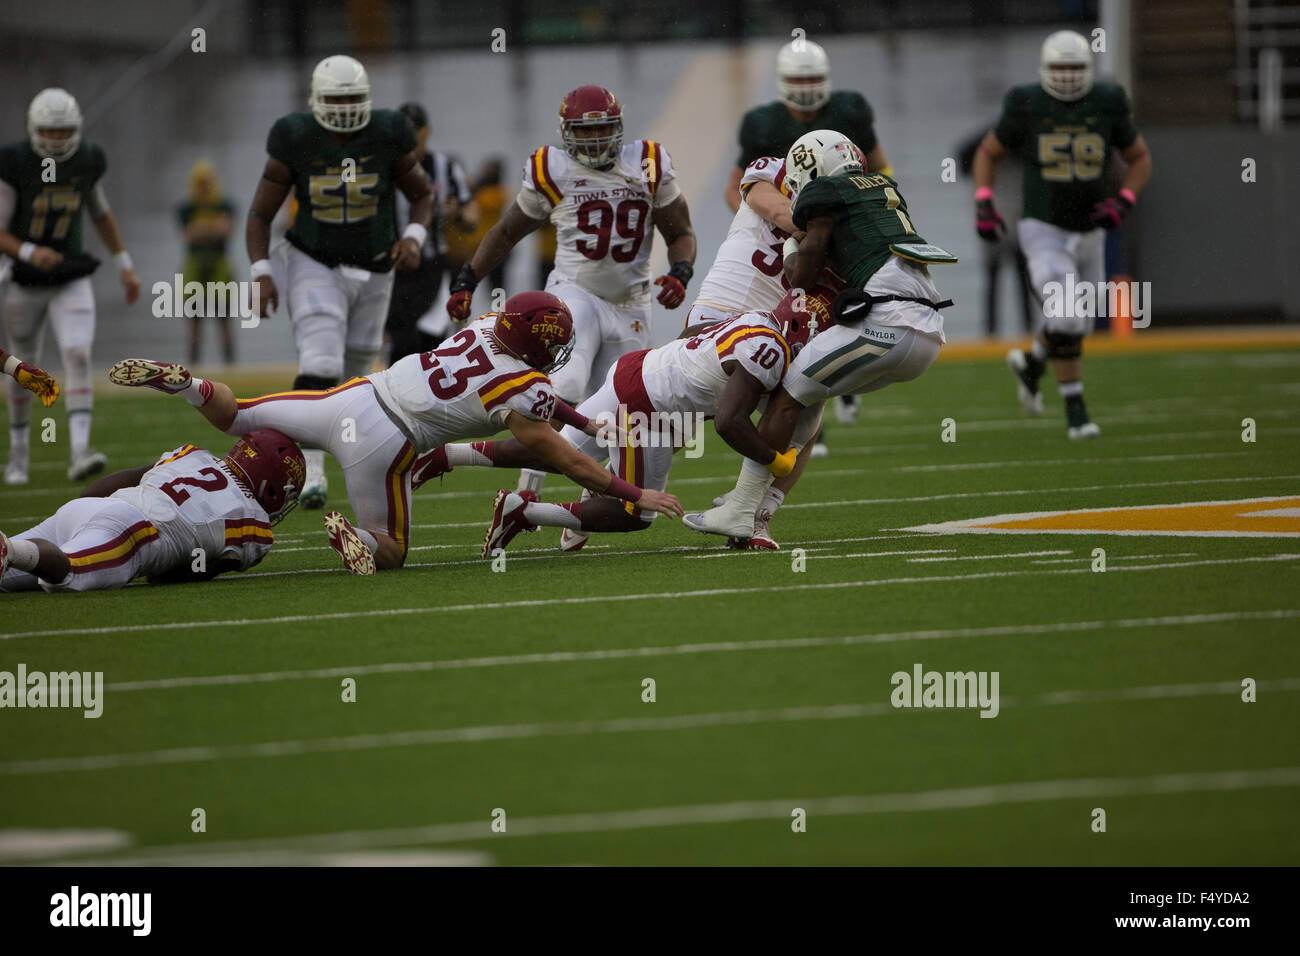 October 24, 2015: wide receiver Corey Coleman (1) of the Baylor Bears tackled by defensive back Brian Peavy (10) Stock Photo